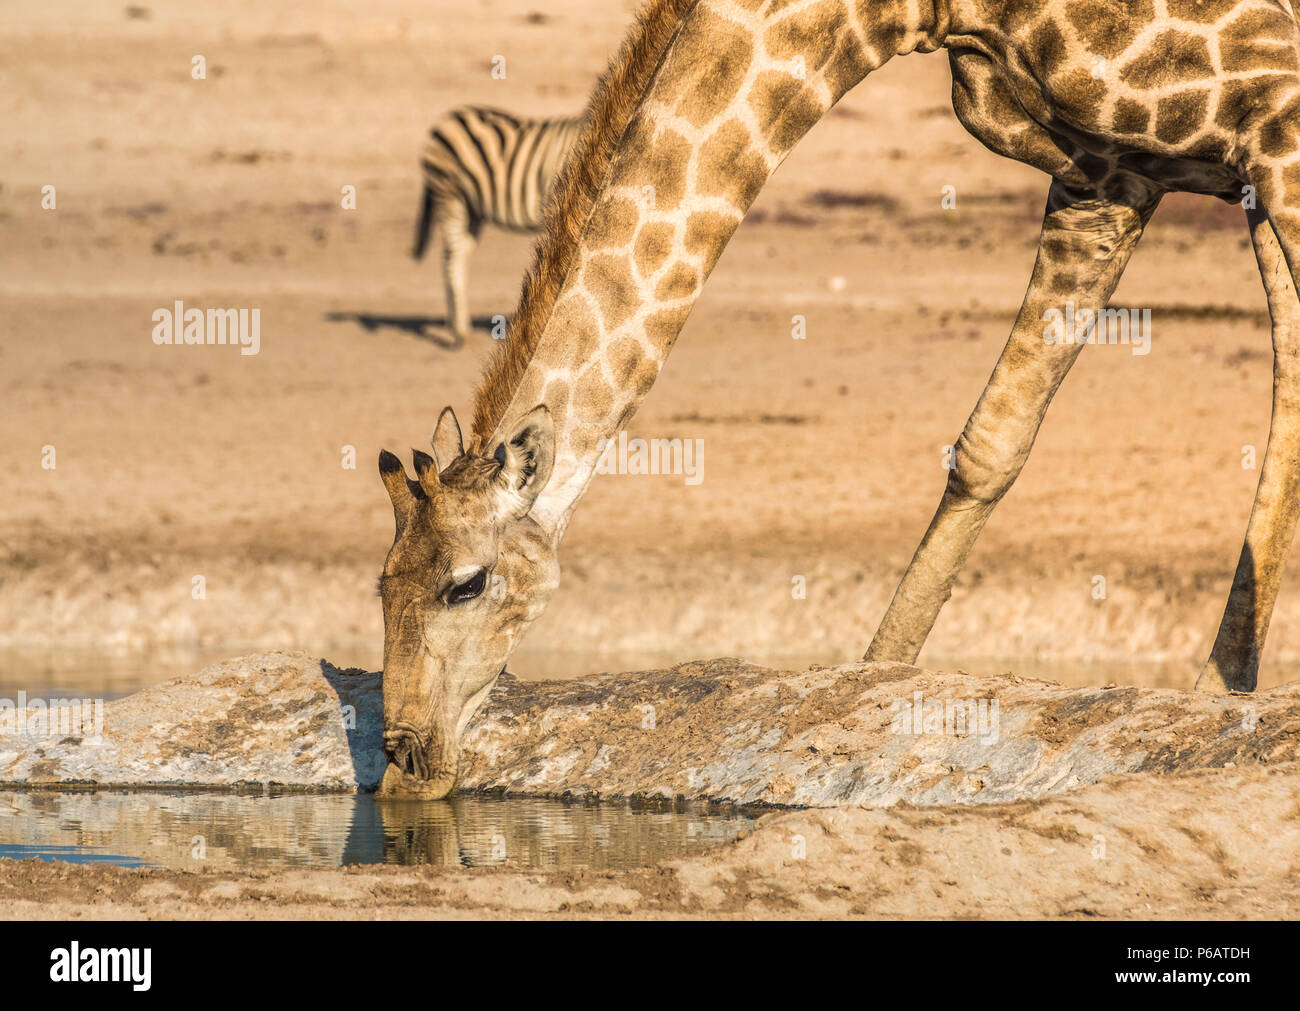 Giraffes and zebras gather for a late afternoon drink at the Nebrownii waterhole, Okaukeujo, Etosha National Park, Namibia - Stock Image